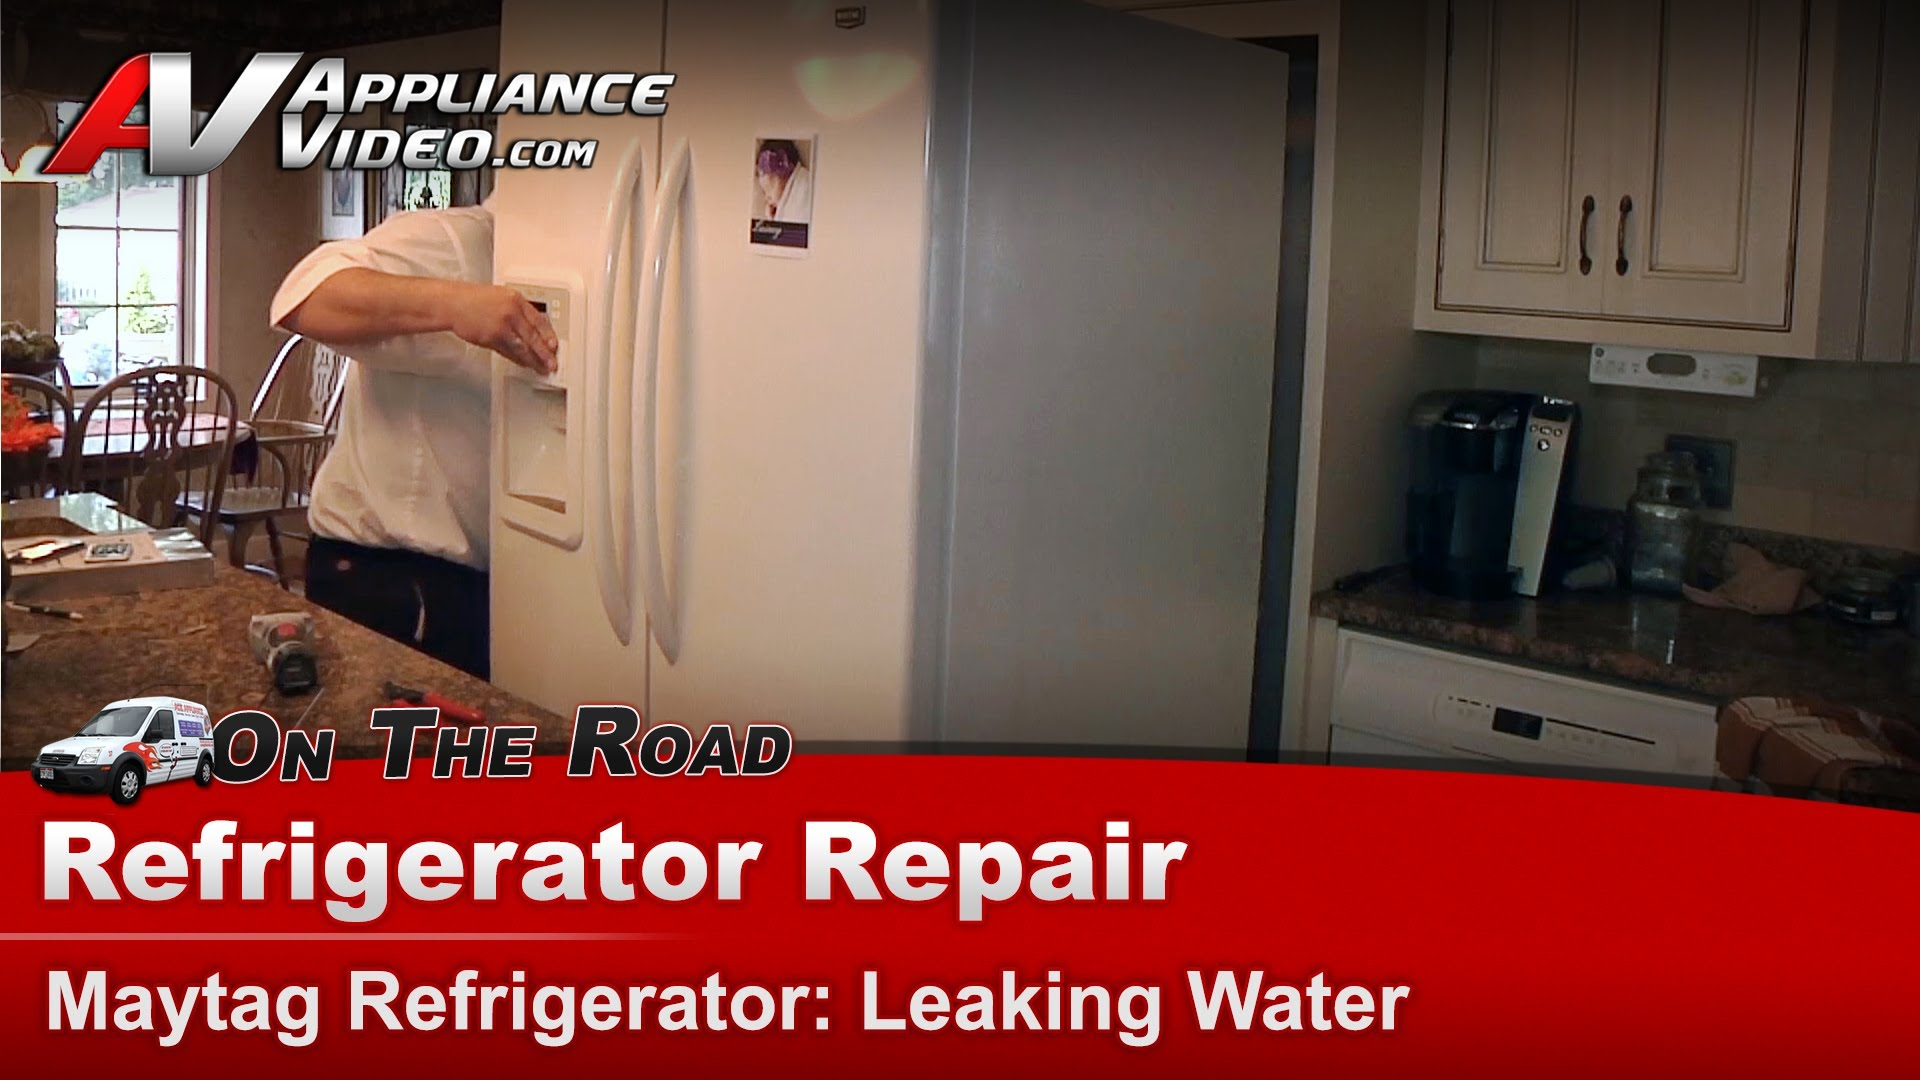 Maytag Mf12569veq2 Refrigerator Repair Leaking Water